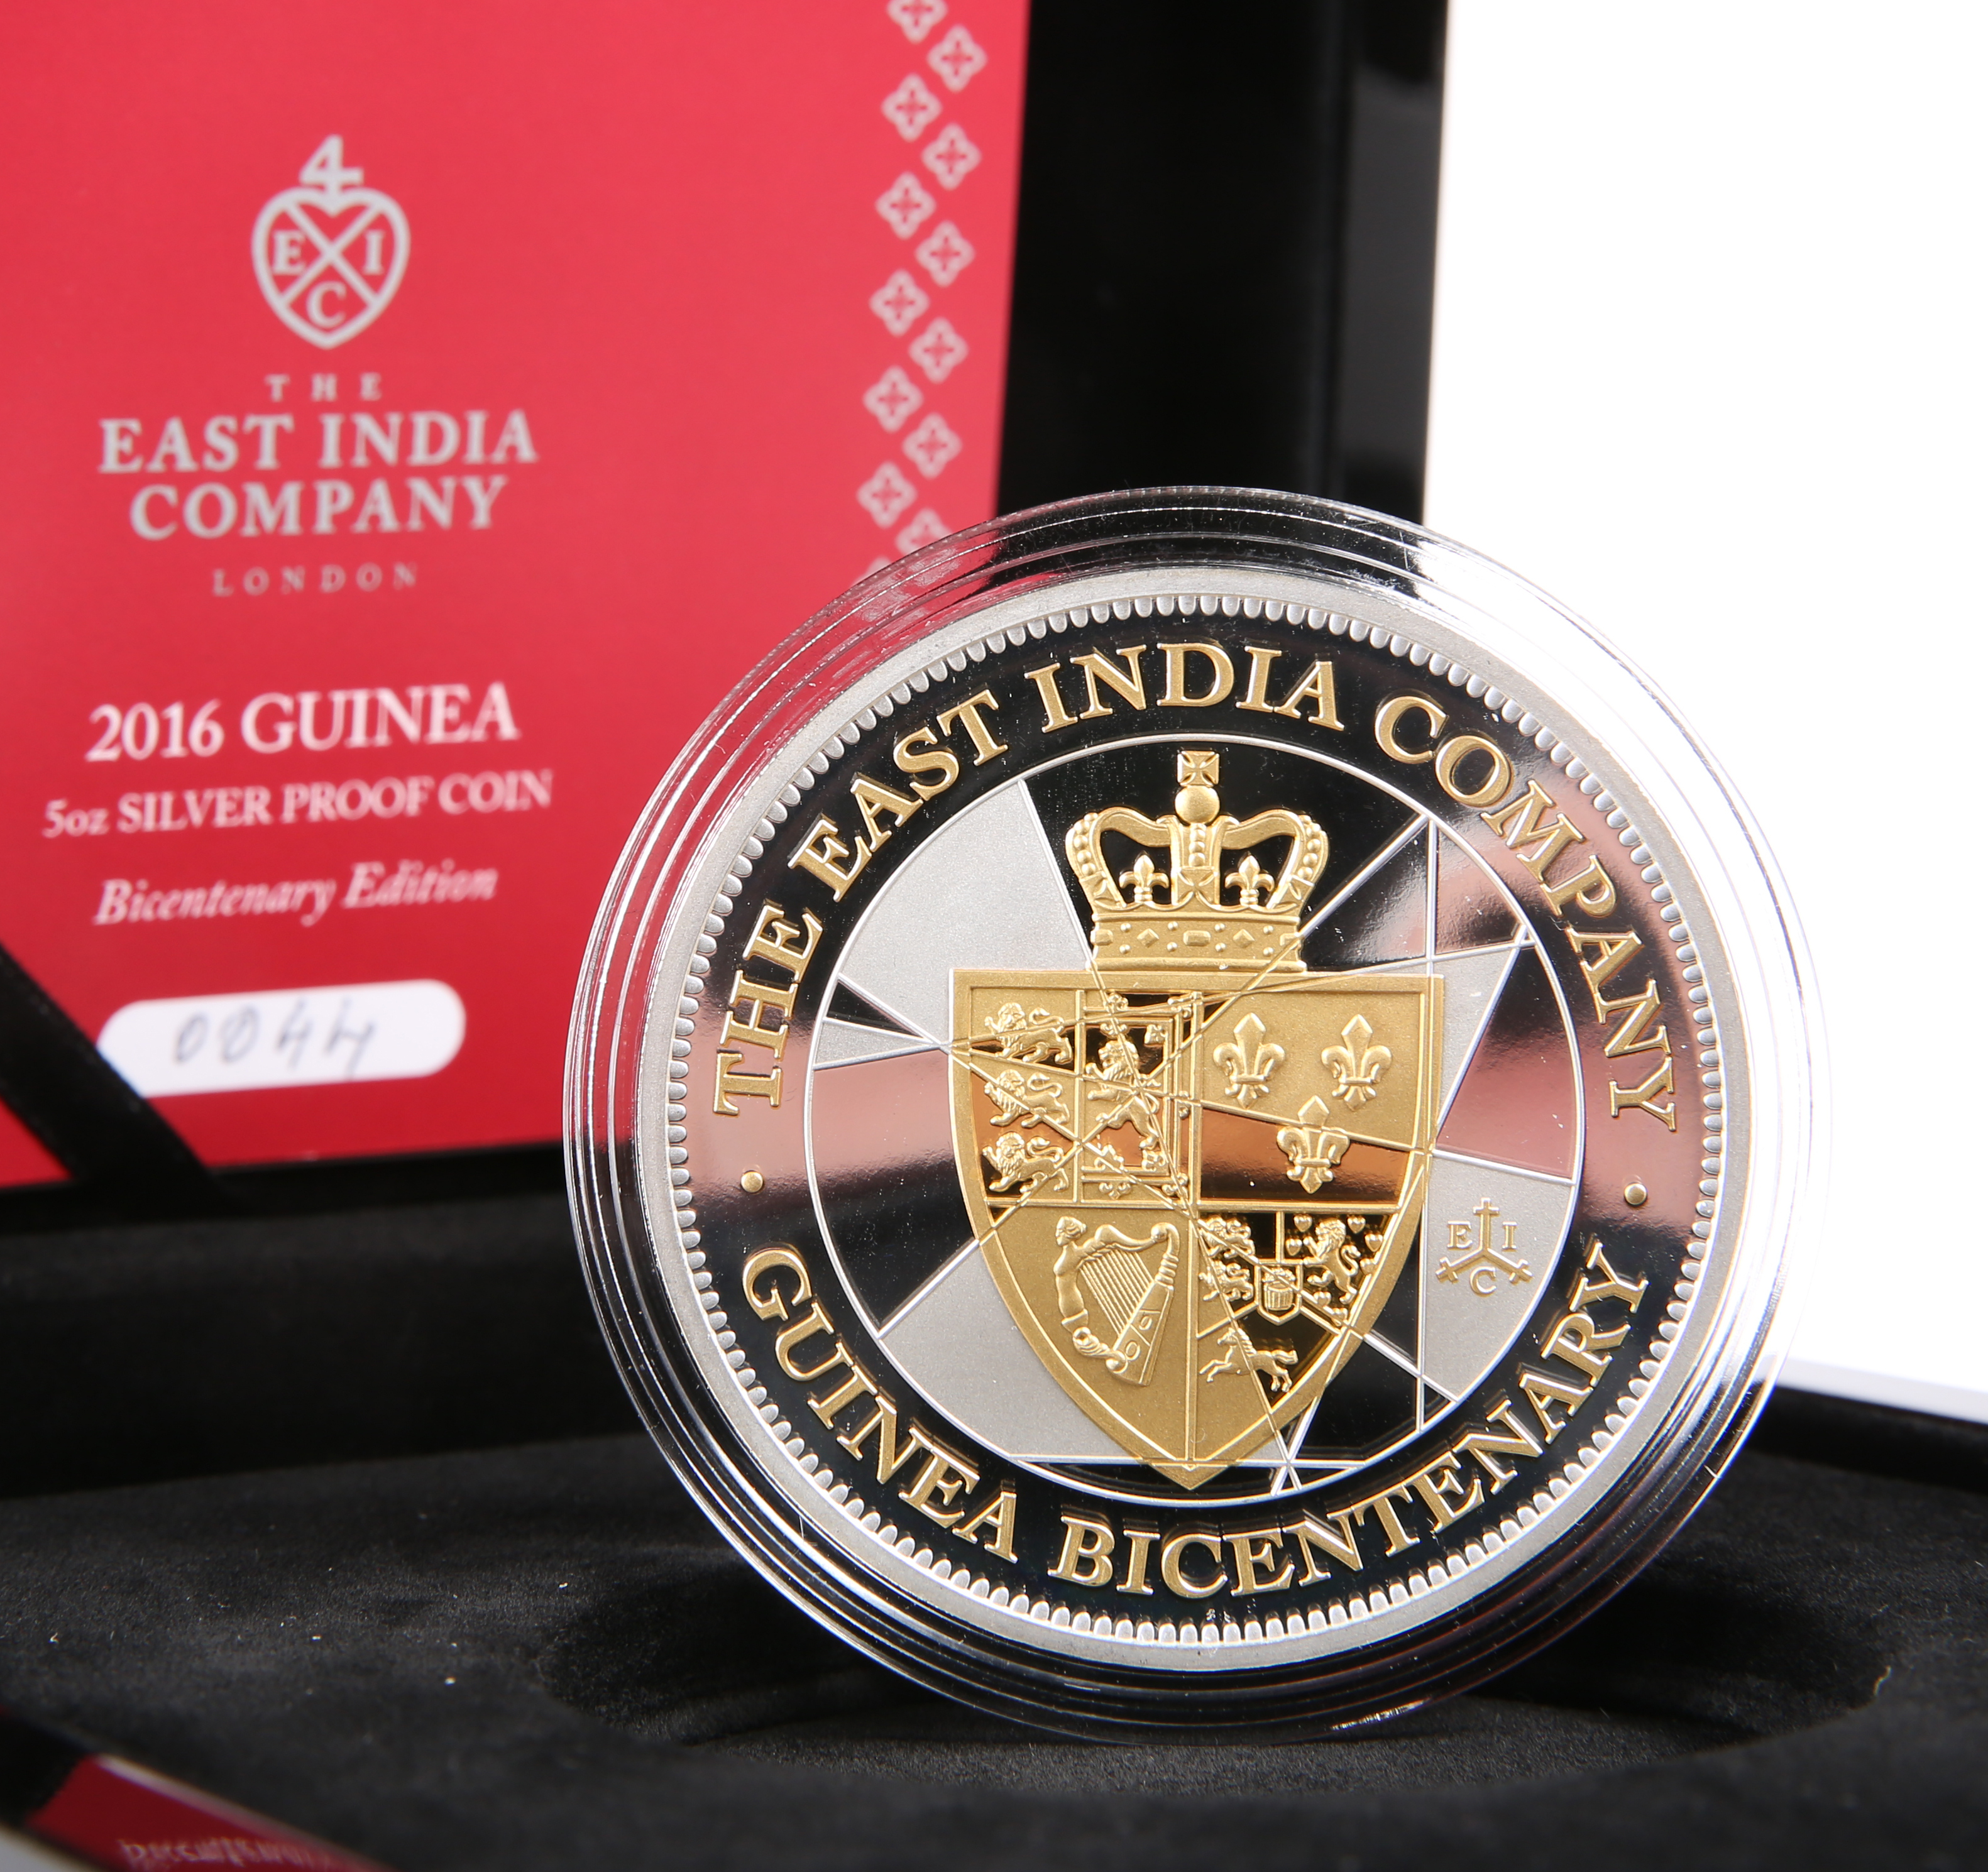 AN EAST INDIA COMPANY 2016 GUINEA 5OZ SILVER PROOF COIN, Bicentenary Edition, boxed with COA no.